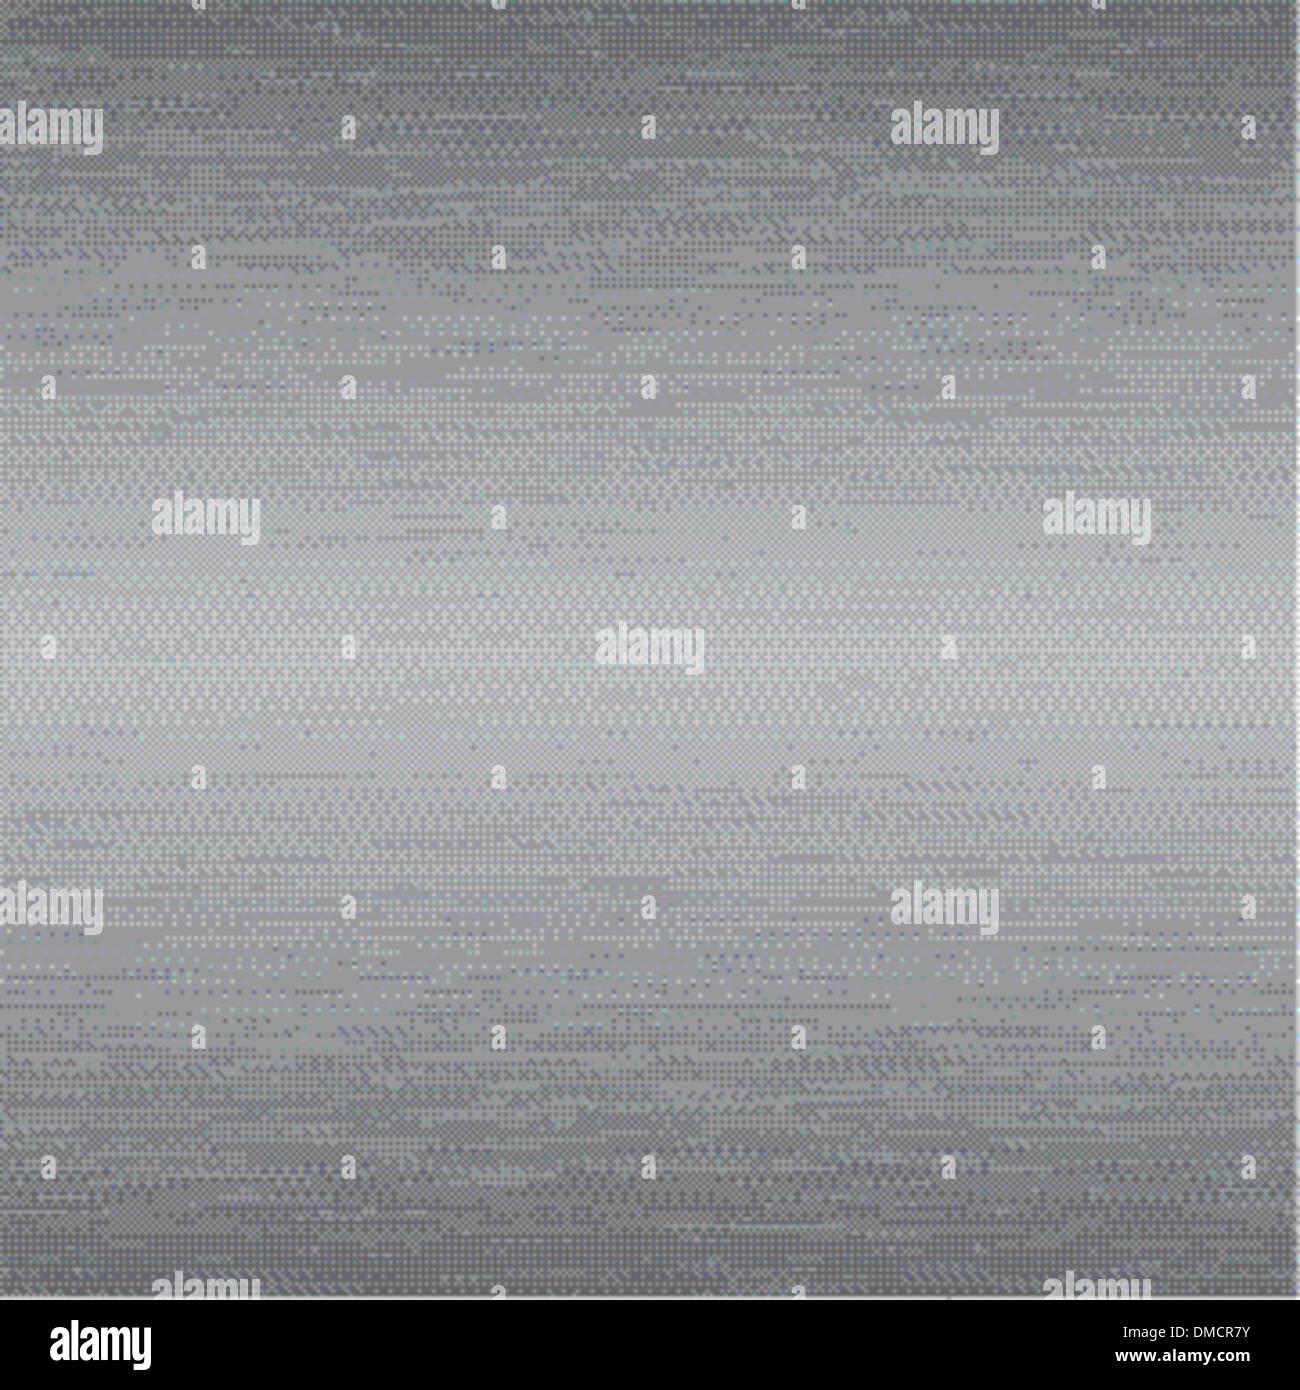 brushed metal plate texture - Stock Vector